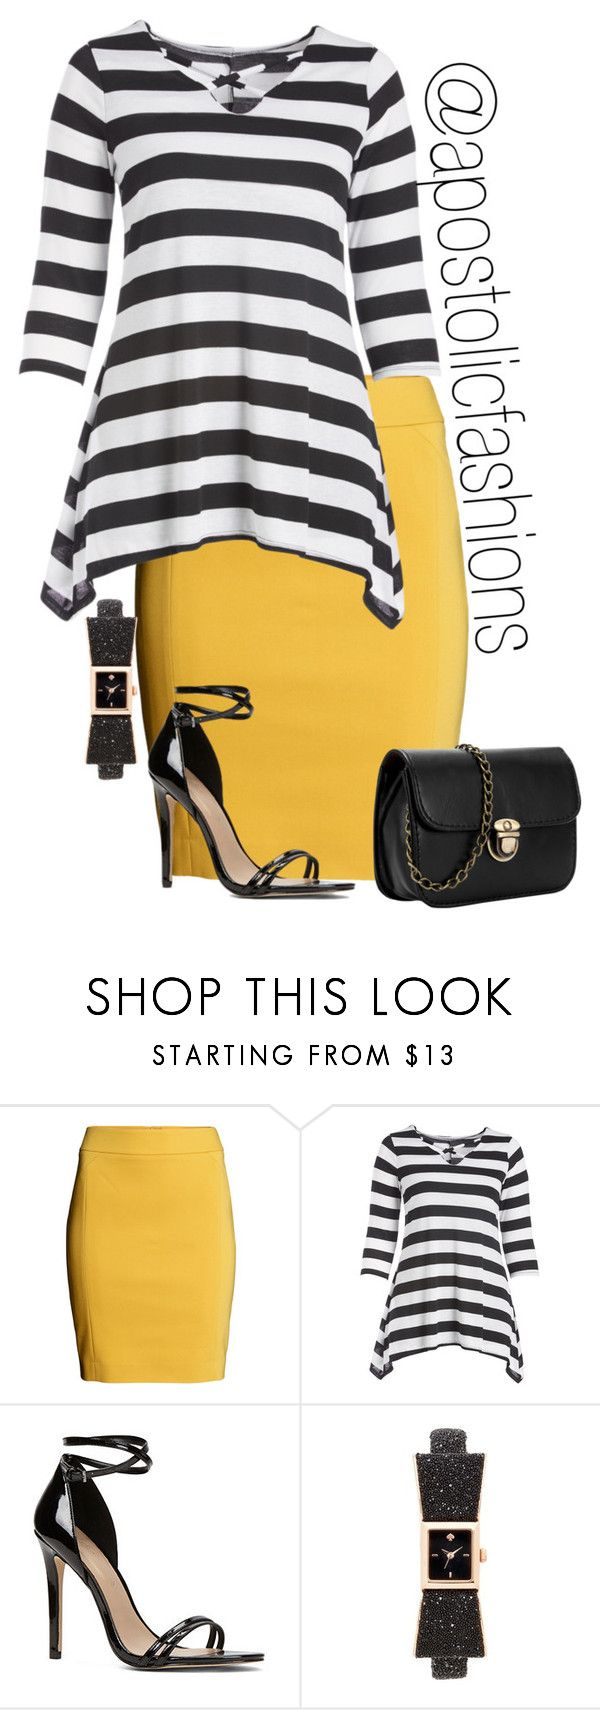 """""""Apostolic Fashions #1654"""" by apostolicfashions ❤ liked on Polyvore featuring H&M, ALDO and Kate Spade"""